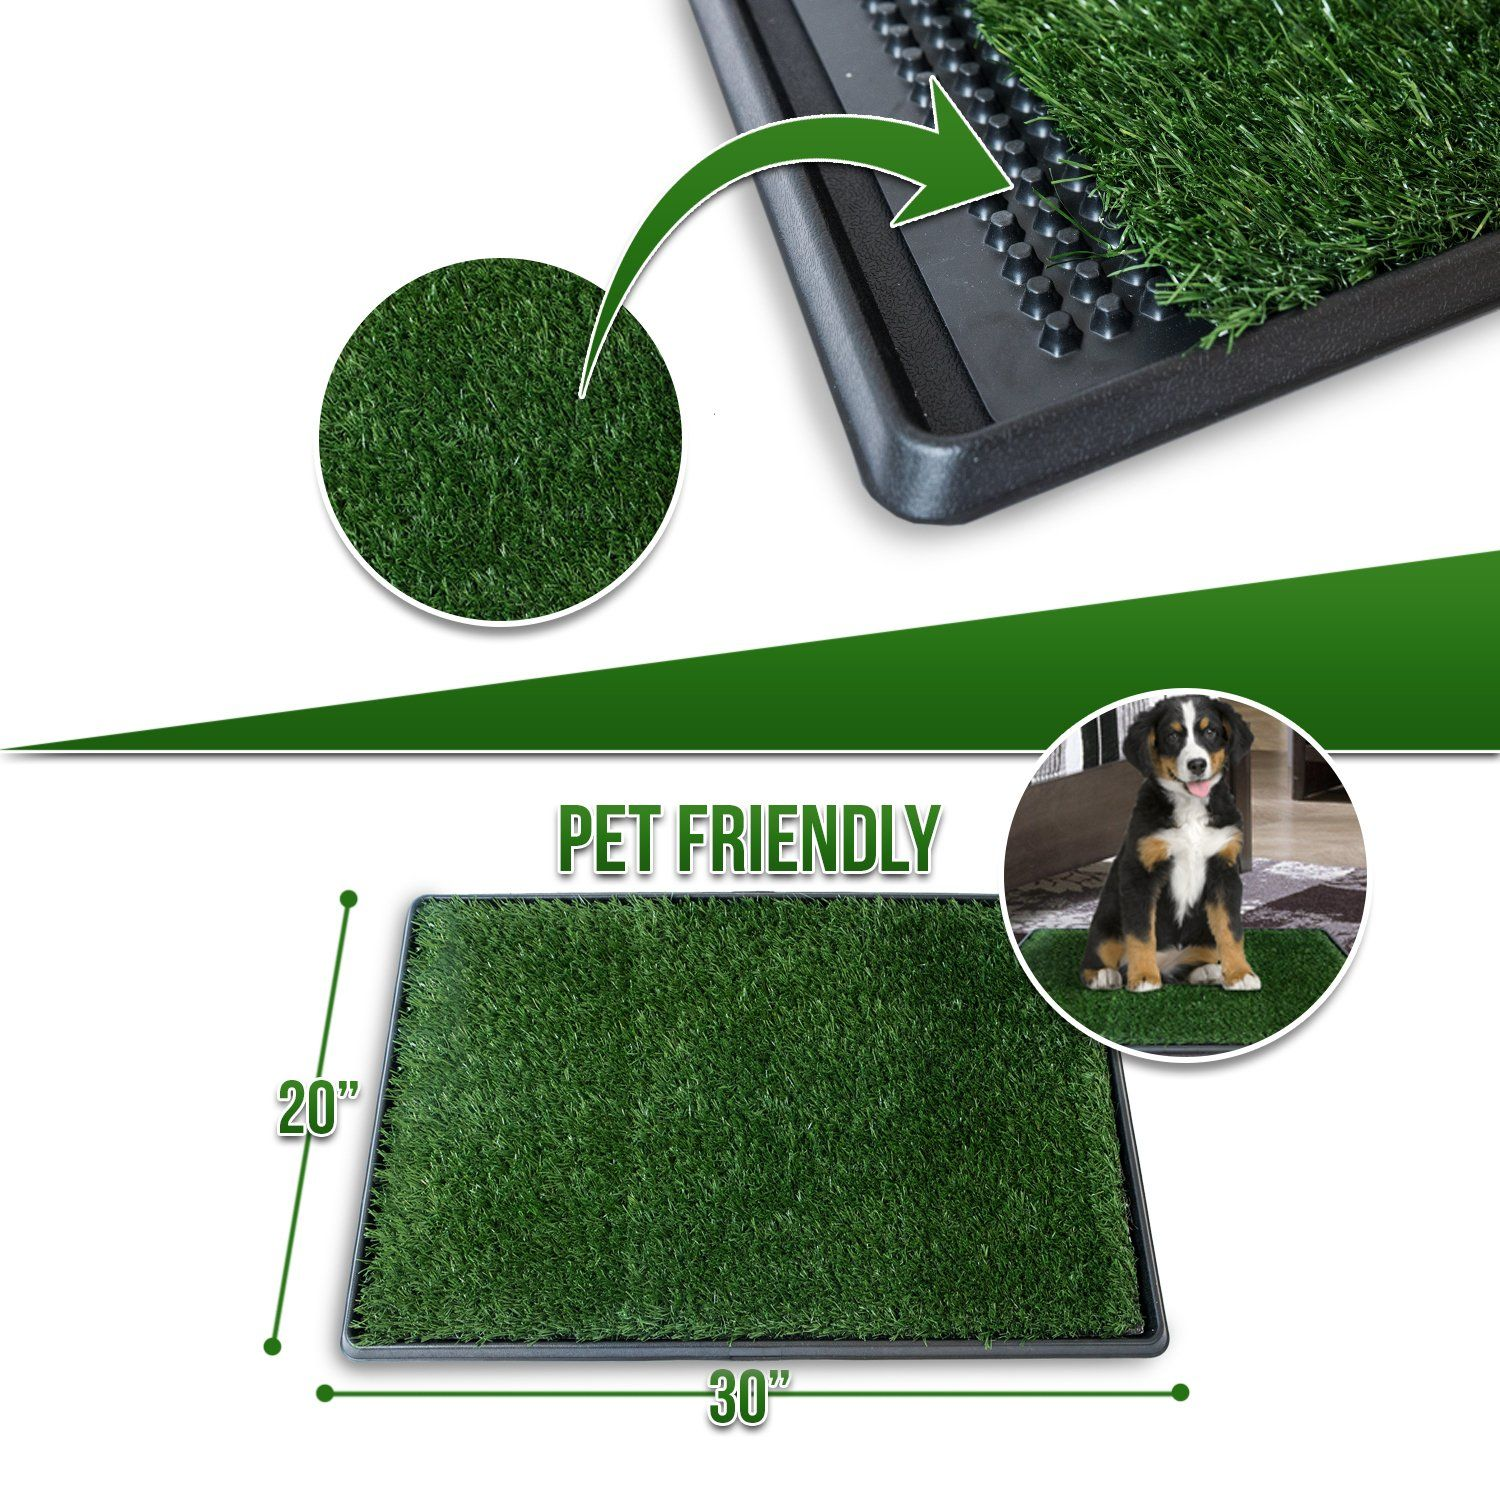 Ideas In Life Dog Potty Grass Pee Pad ¨C Artificial Pet